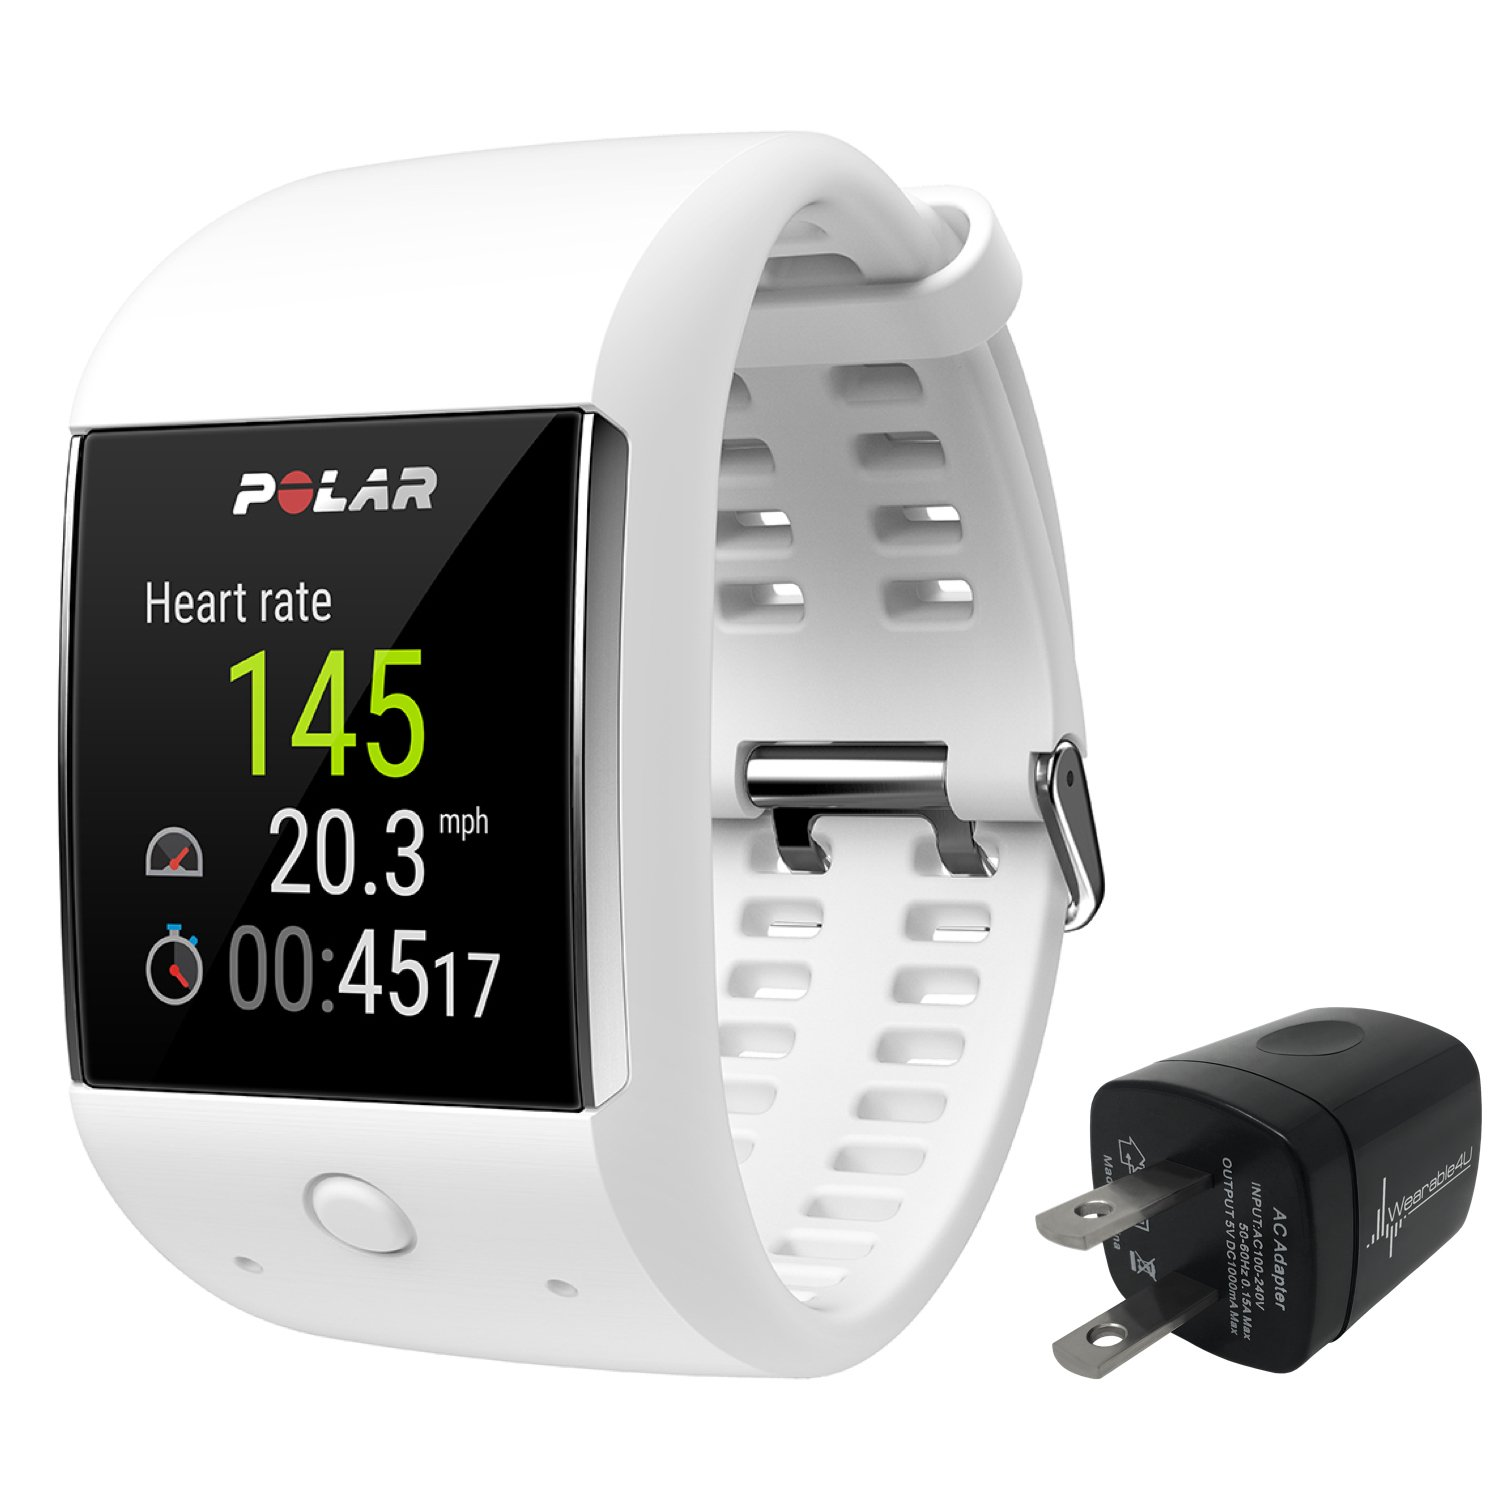 Polar M600 Sports Smart Watch With Built-In GPS and Heart Rate Monitor and Wearable4U Wall Chargind Adapter Bundle (White)